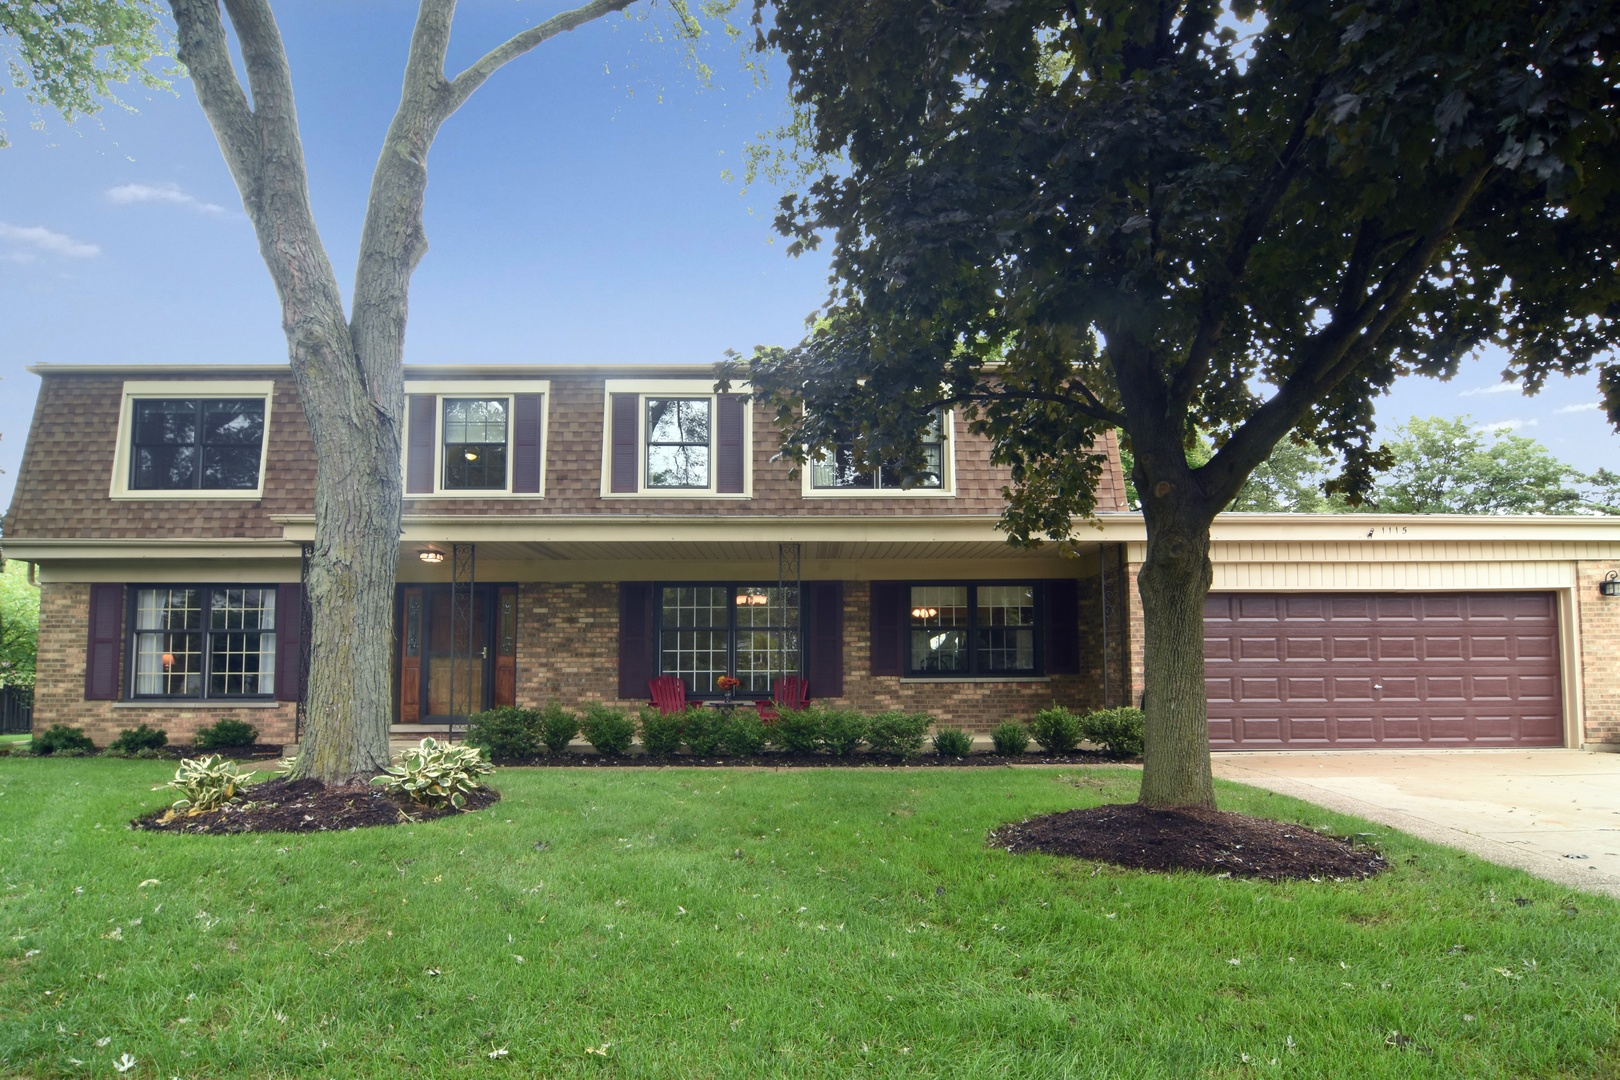 1115 Adirondack Drive, Northbrook in Cook County, IL 60062 Home for Sale